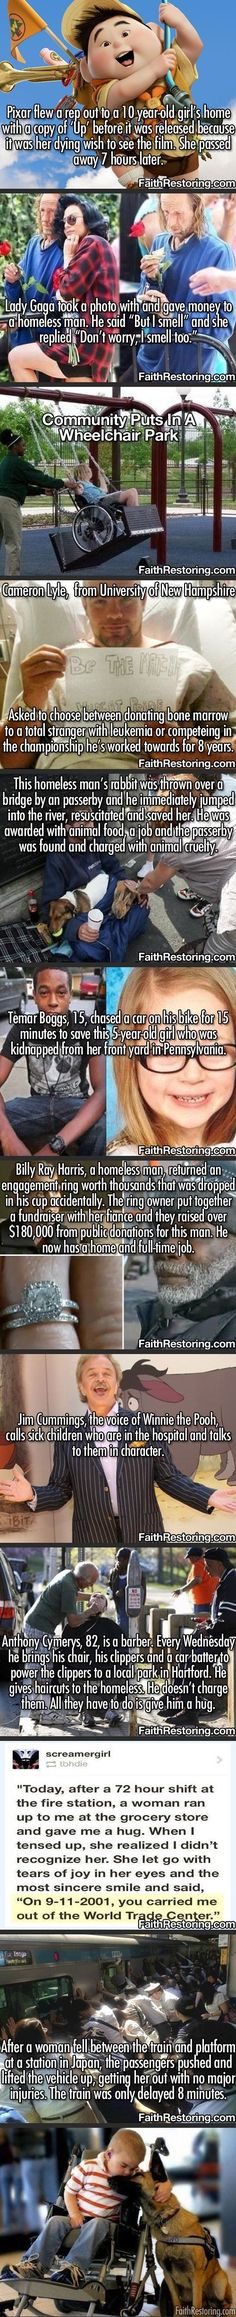 This makes me tear up! These are wonderful to read! Faith restored!!